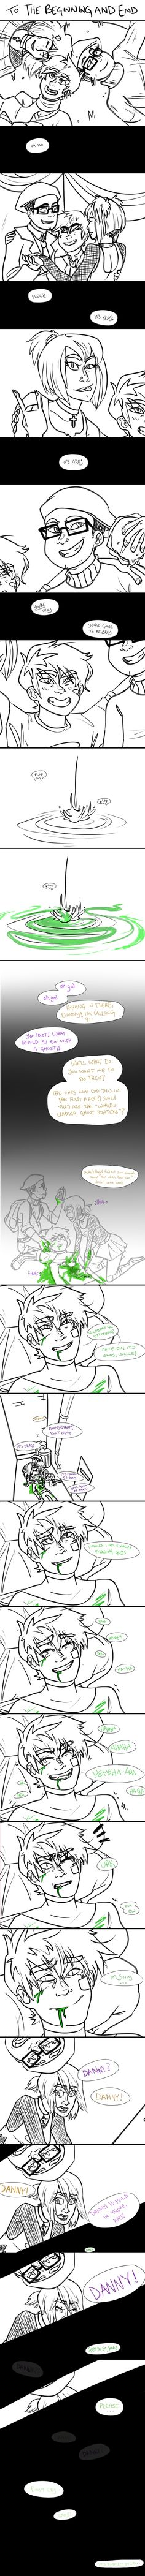 Beginning and Ending by claucksie.deviantart.com on @DeviantArt *clutches chest* my heart can't take it